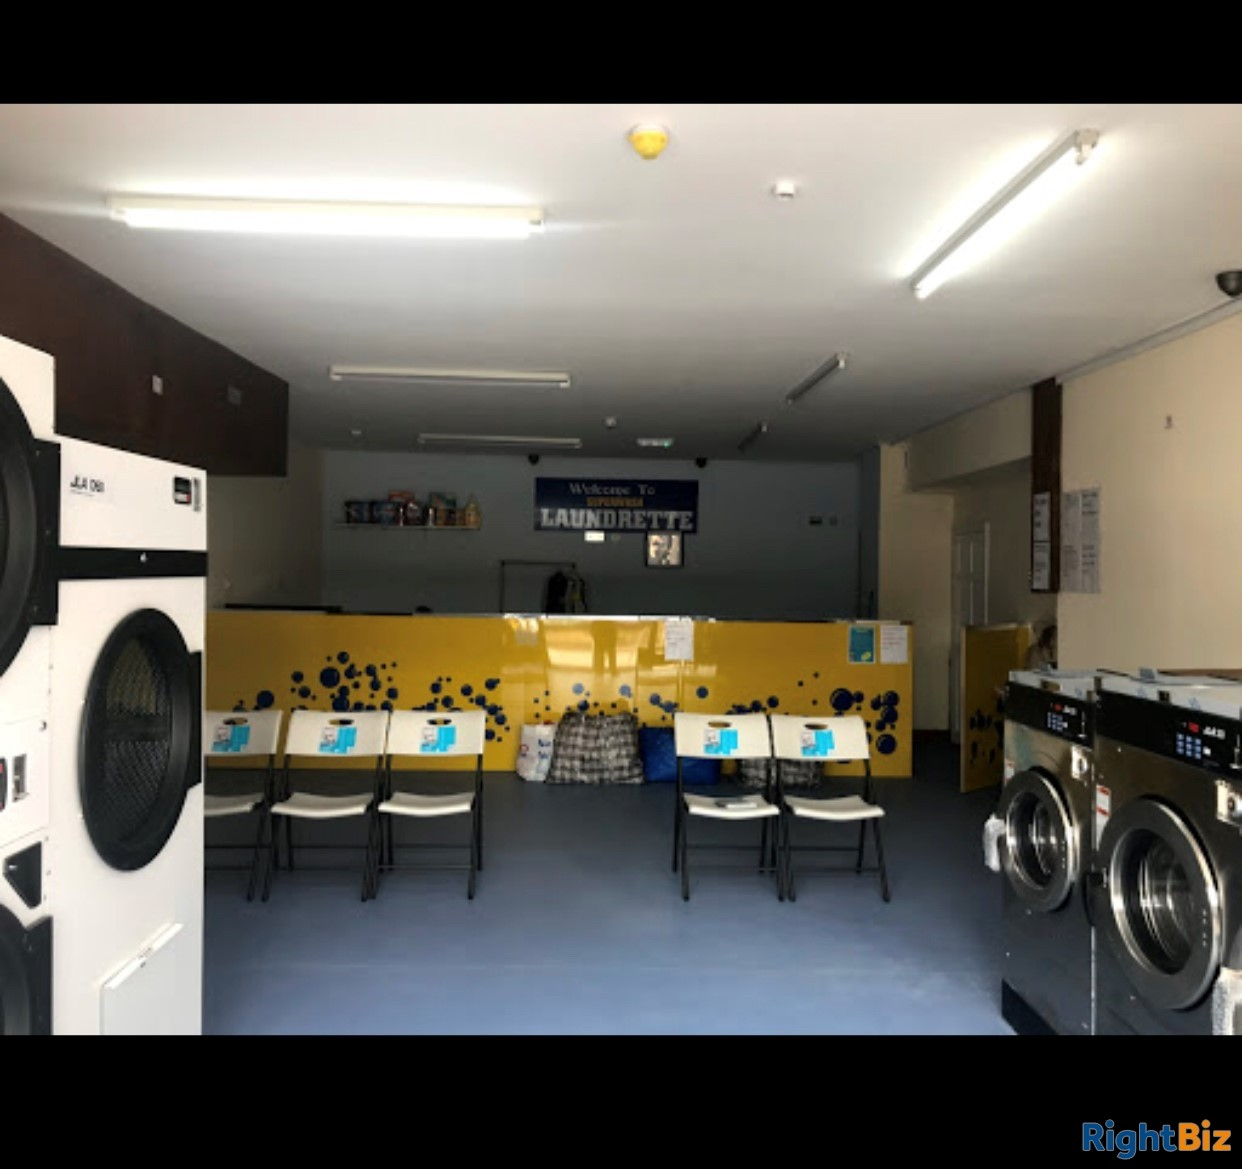 Laundrette for sale. Small business everything new. Prime location!! WF9 2AE. - Image 2